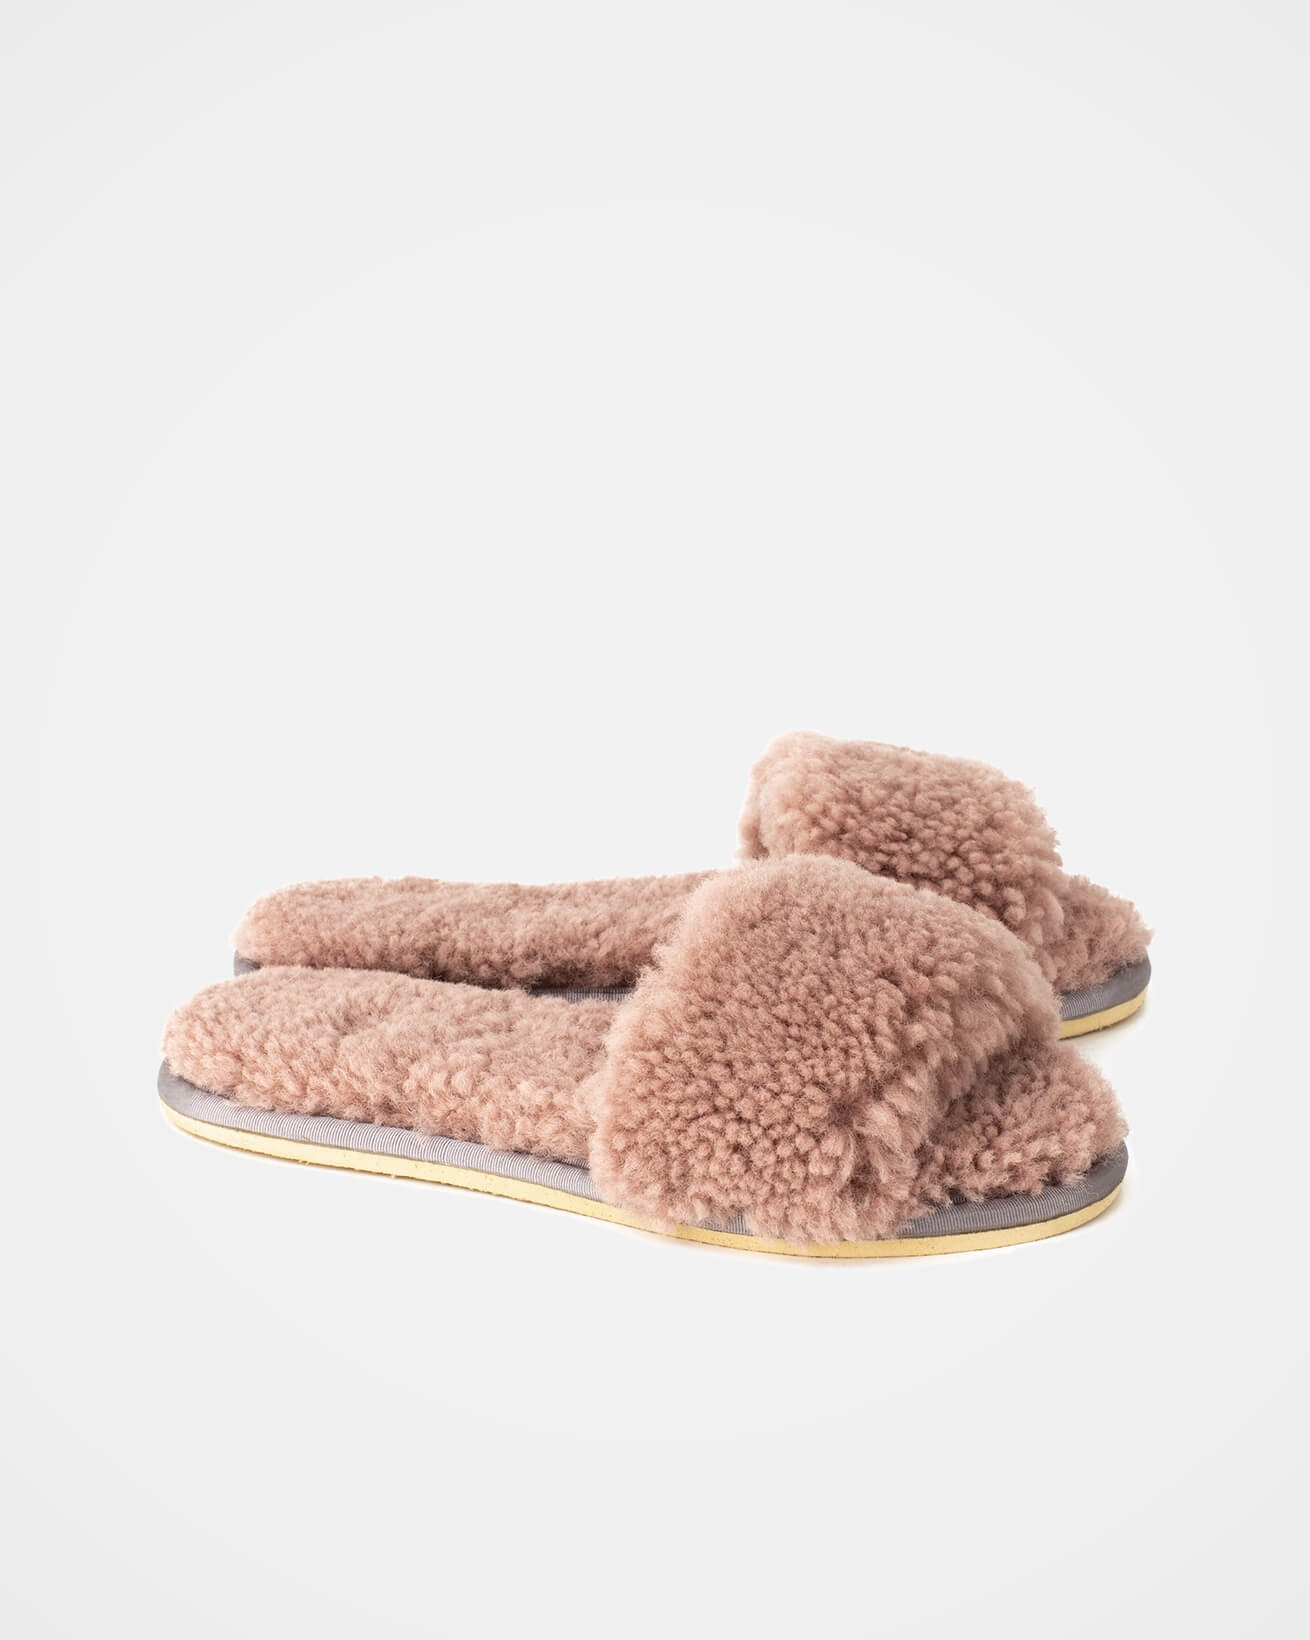 7554_7614_sheepskin-slides_dusky-pink_pair_web.jpg